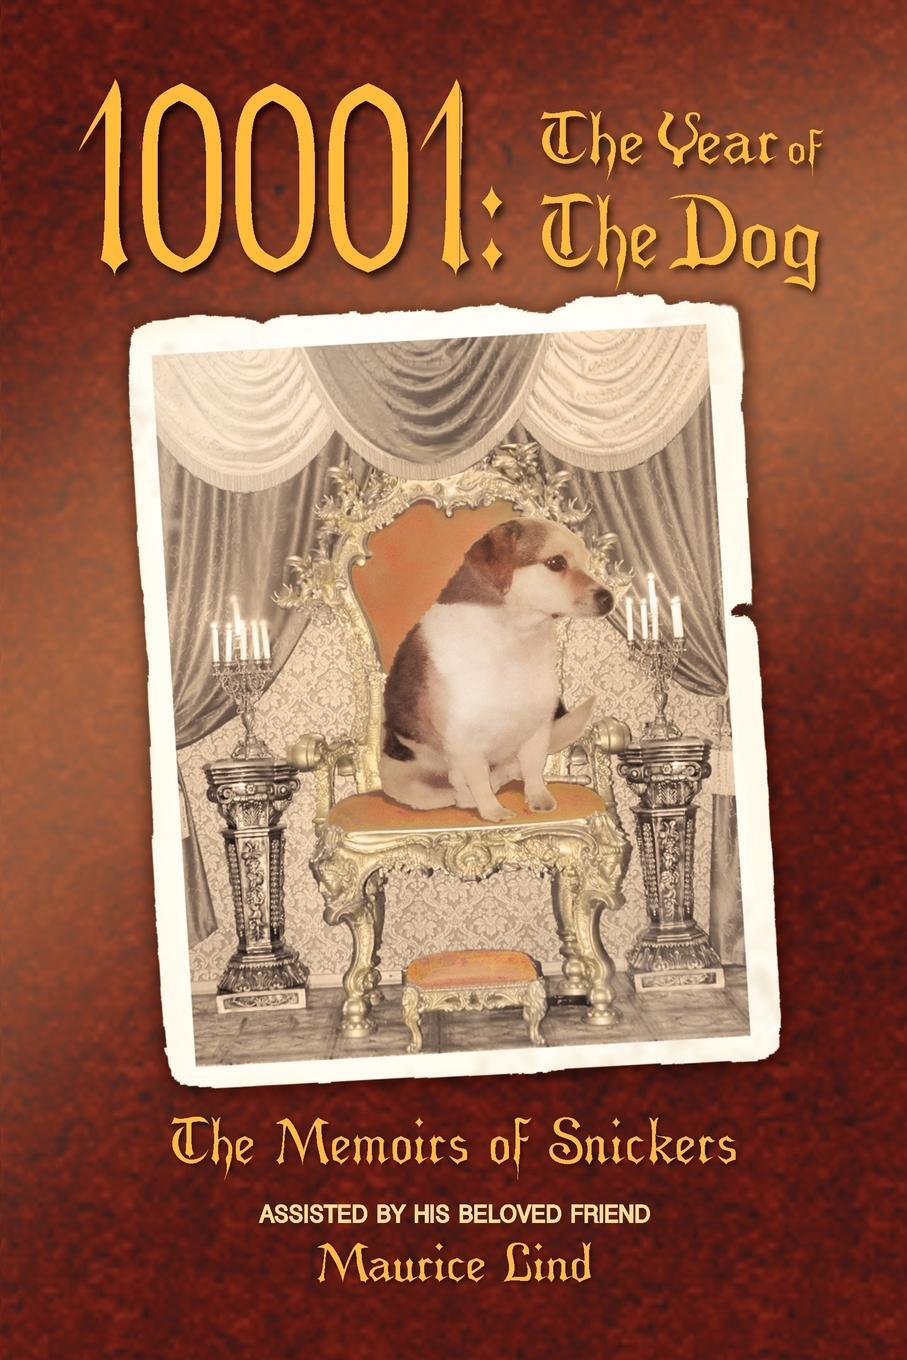 10001. The Year of The Dog. Maurice Lind